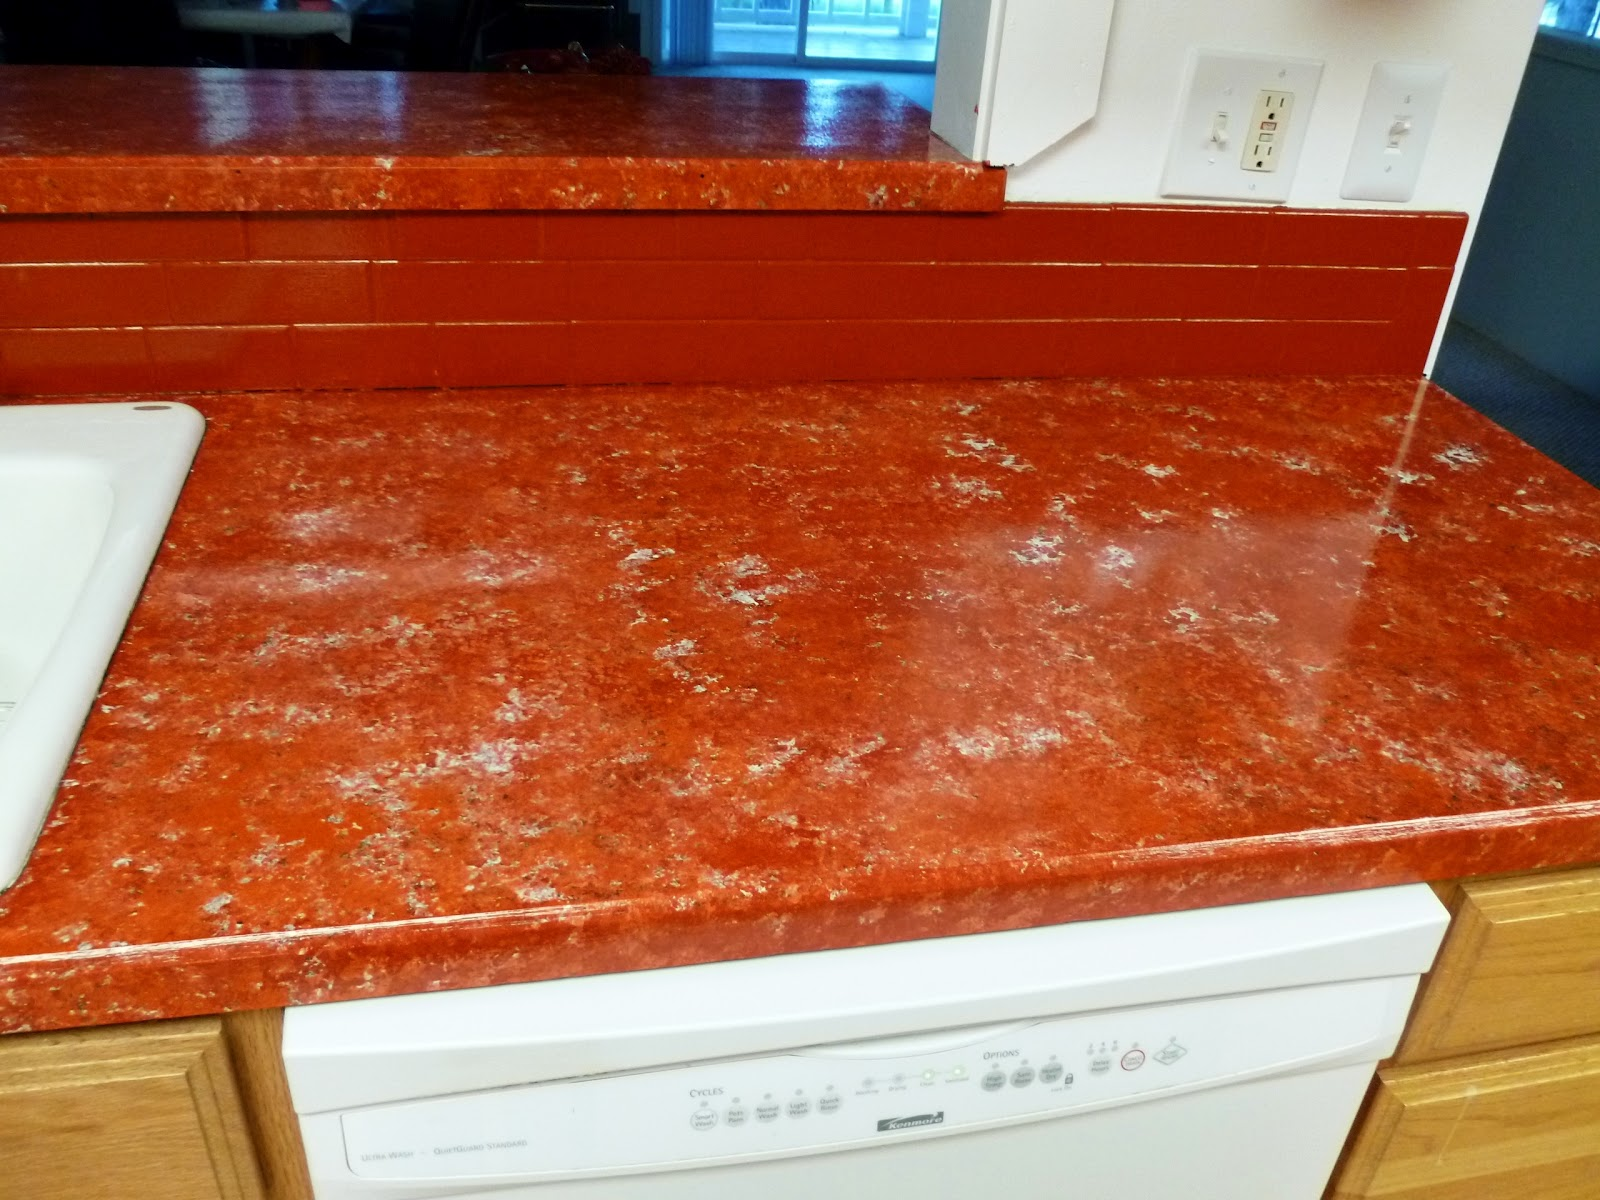 Giani Countertop Paint Vs Rustoleum : after painting my countertops with Giani countertop paint...